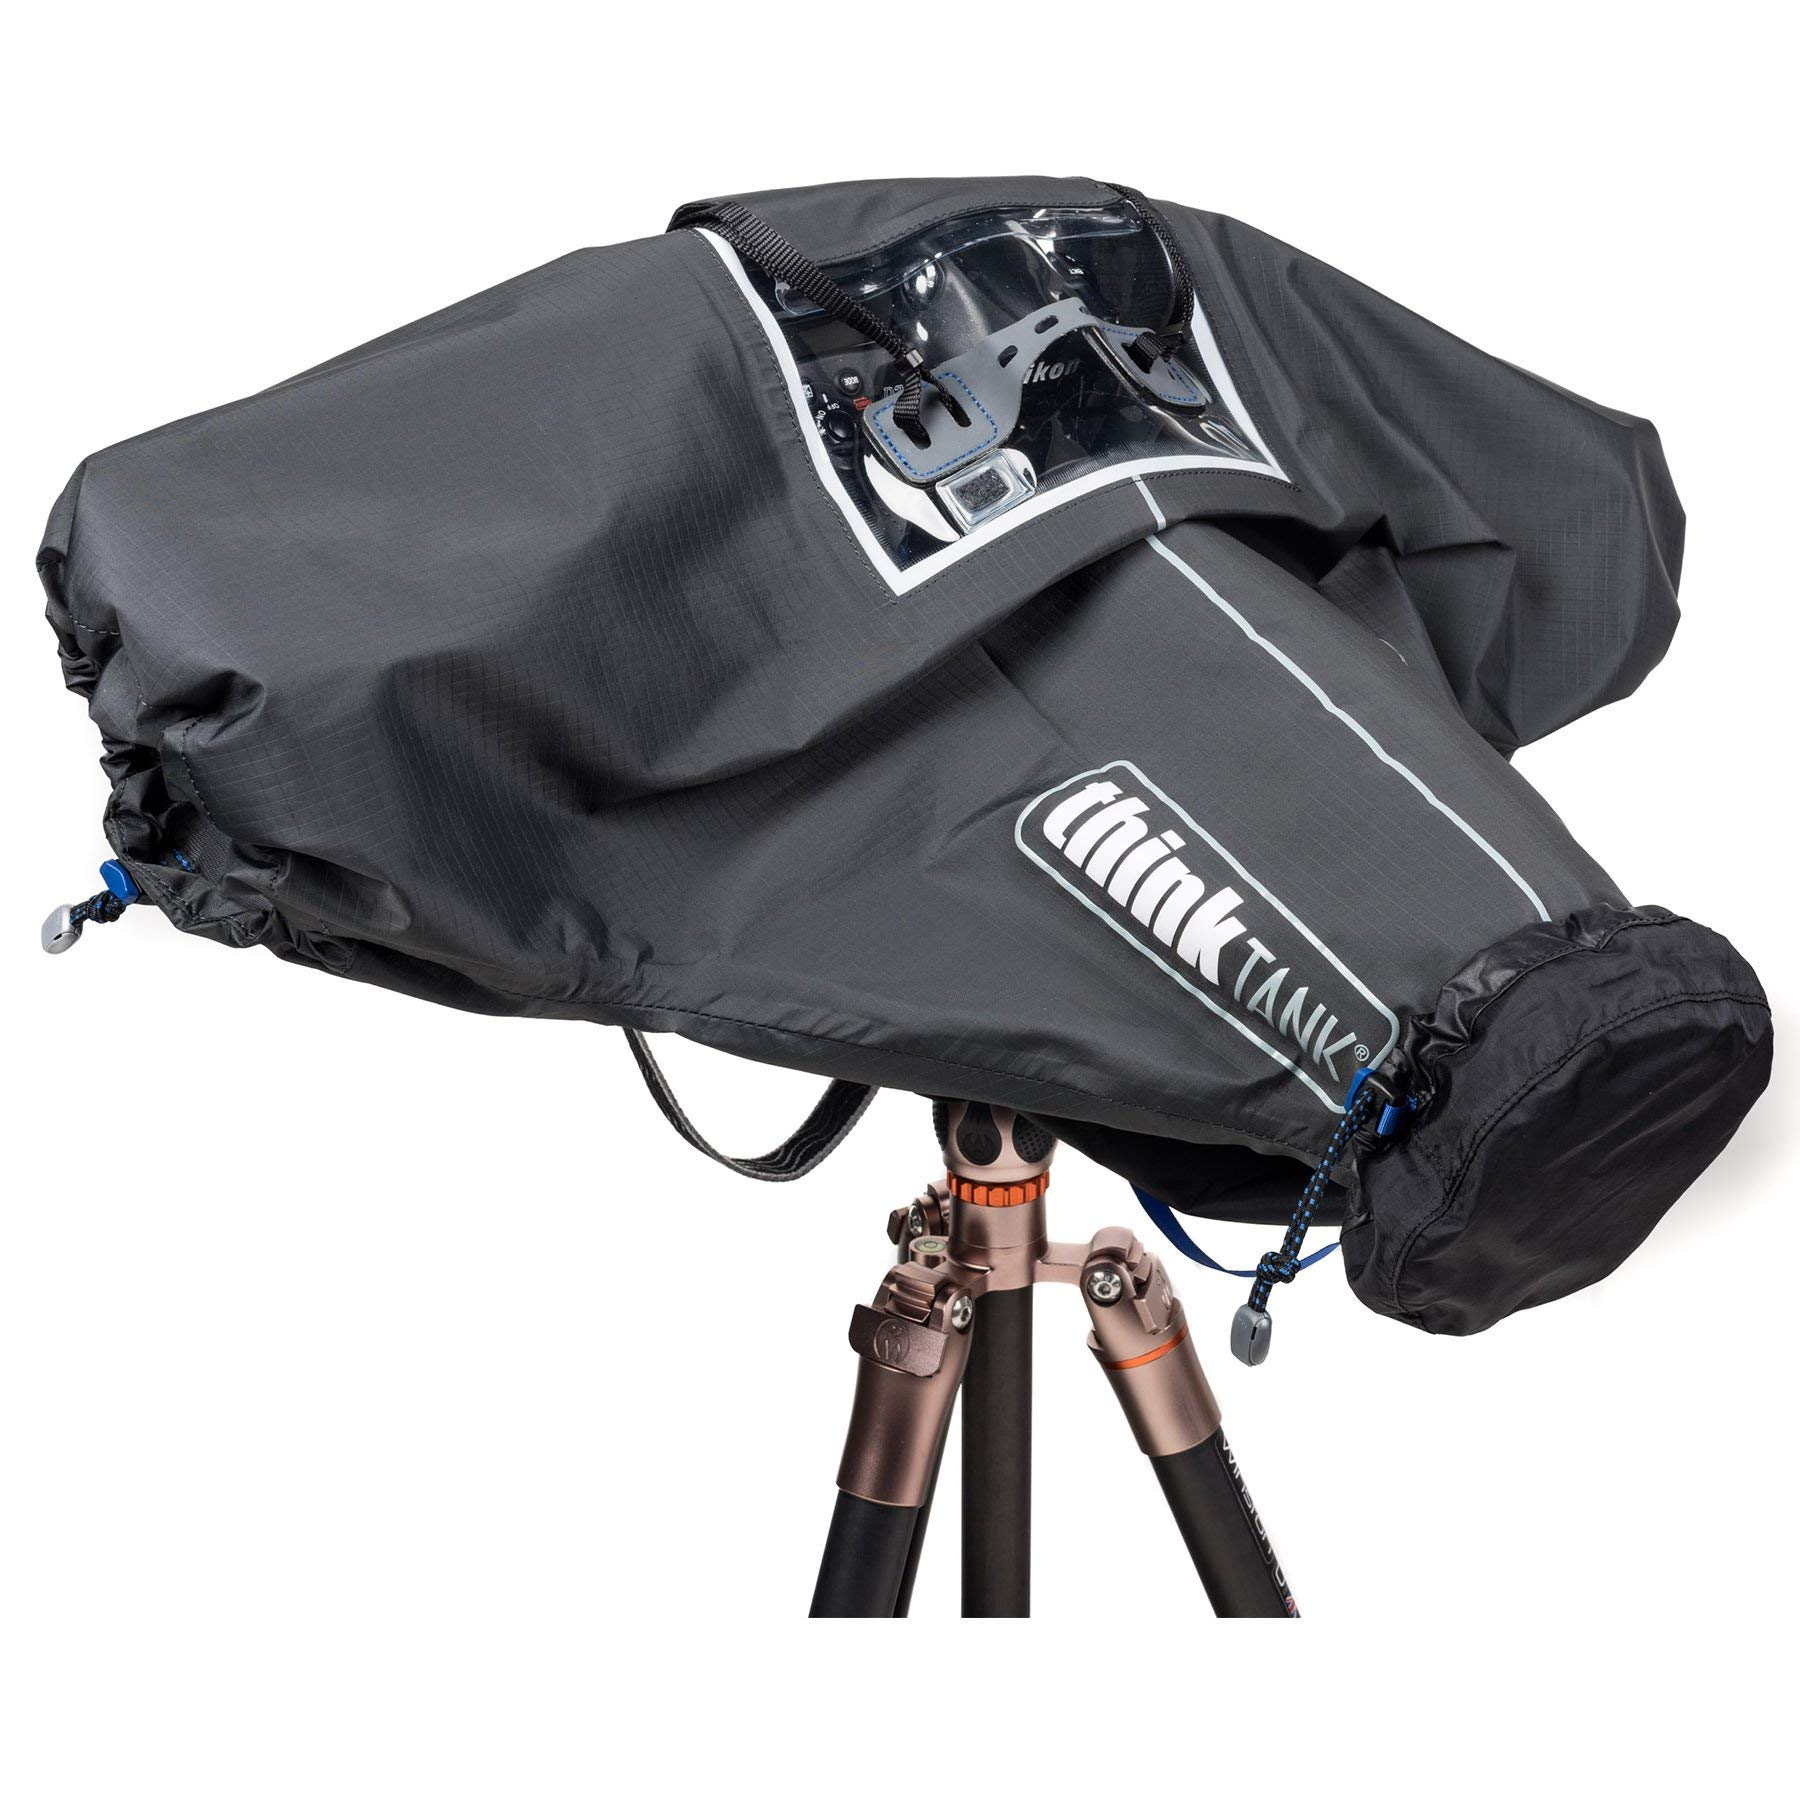 Think Tank Photo Hydrophobia D 70-200 V3 Camera Rain Cover for DSLR Camera with 70-200mm f/2.8 Lens by Think Tank (Image #6)